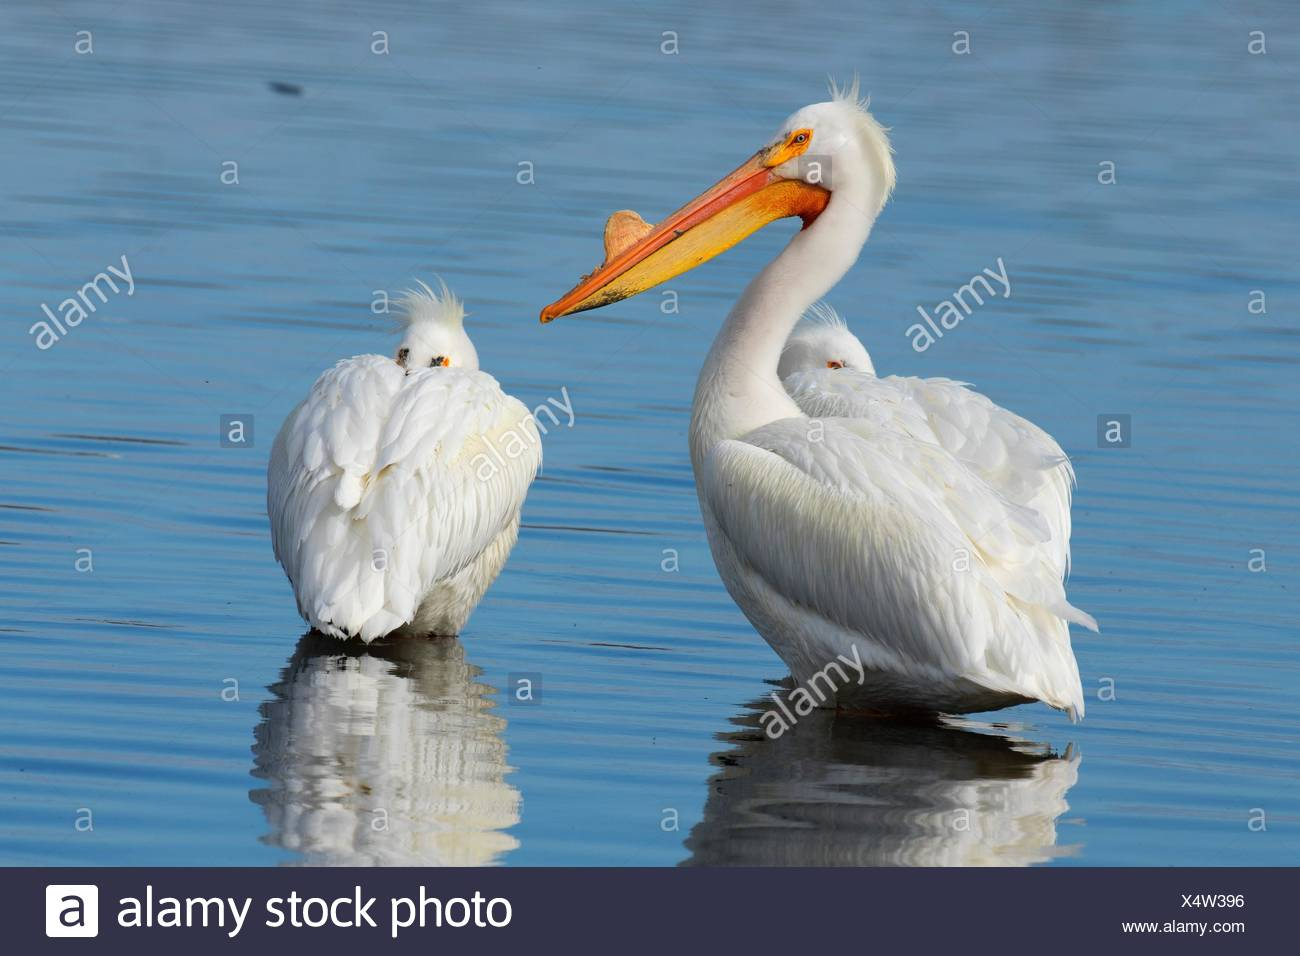 American white pelican (Pelecanus erythrorhynchos), Rocky Ford Creek Water Access Site, Washington. - Stock Image